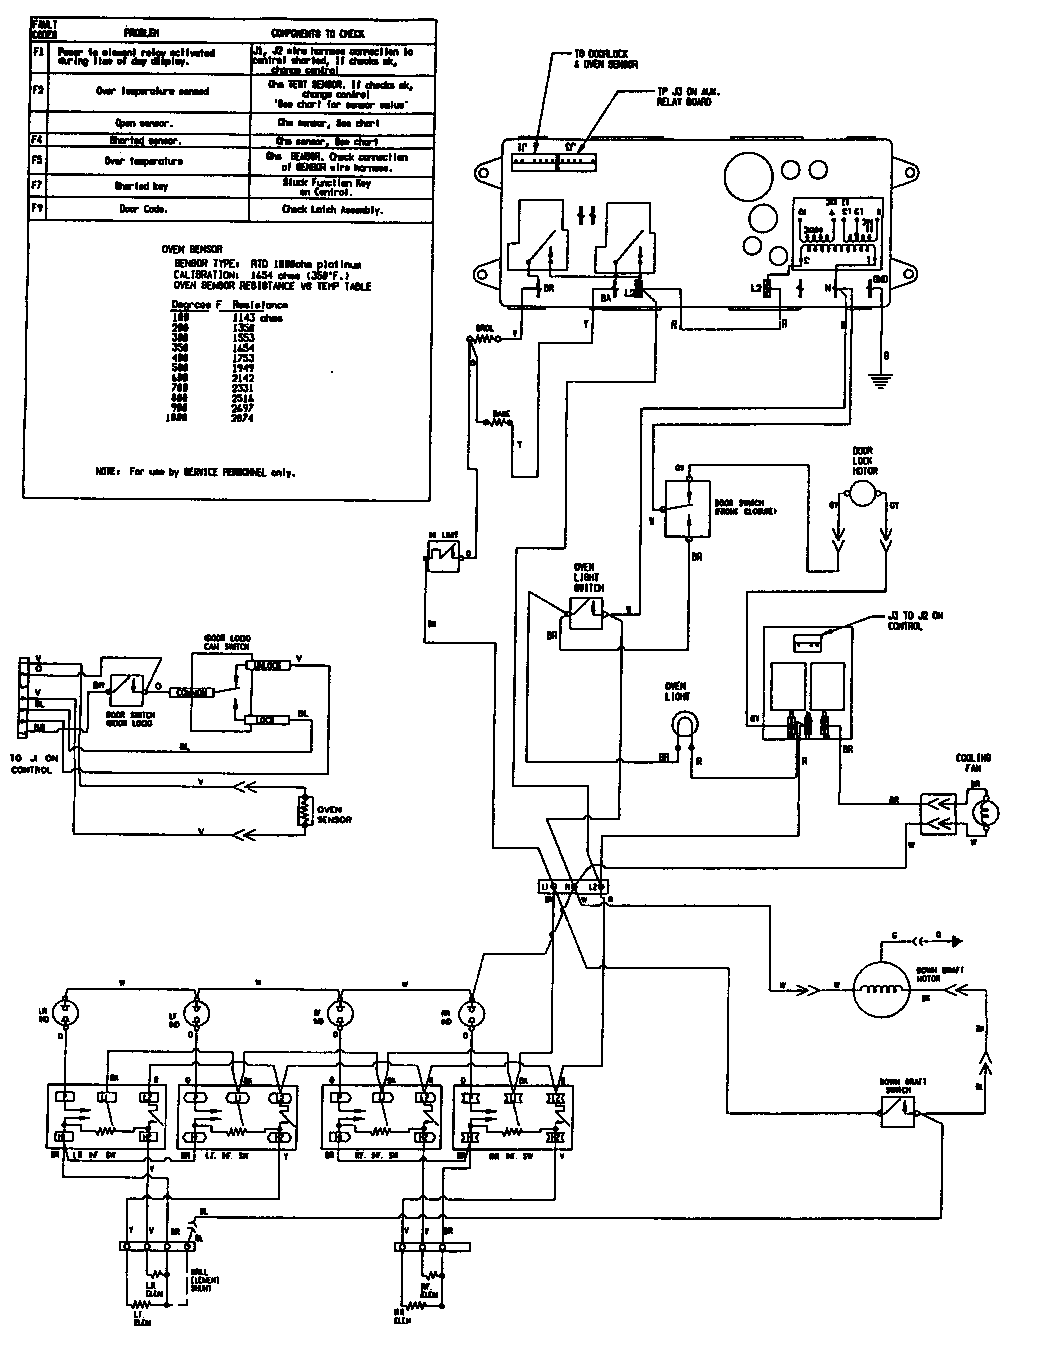 Diagram Oven Kenmore Wiring 363 9378810 Explained Diagrams 80 Series Dryer Fuse Free Download Microwave Parts